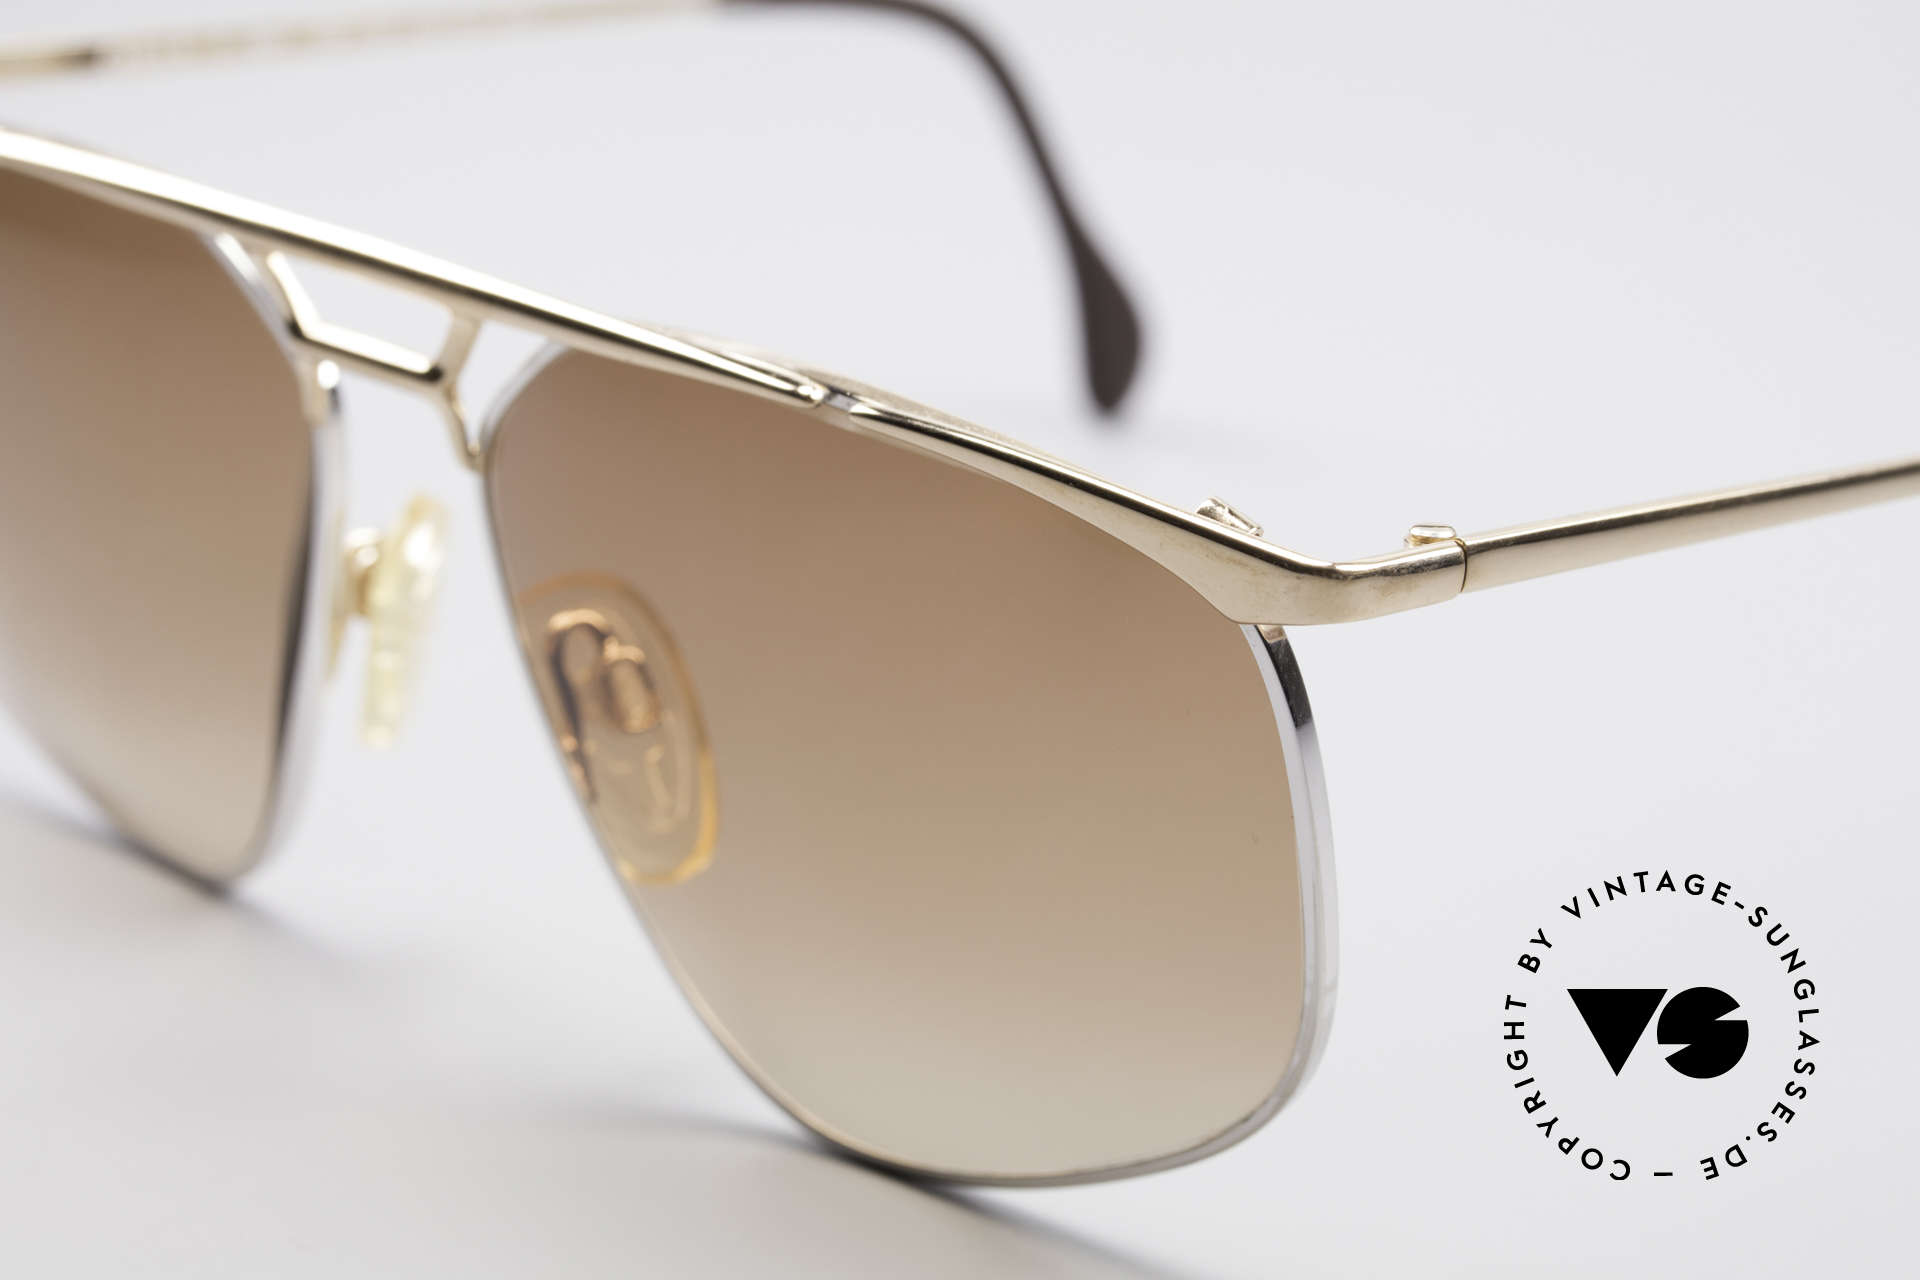 Zollitsch Cadre 9 18kt Gold Plated Sunglasses, interesting alternative to the ordinary 'aviator style', Made for Men